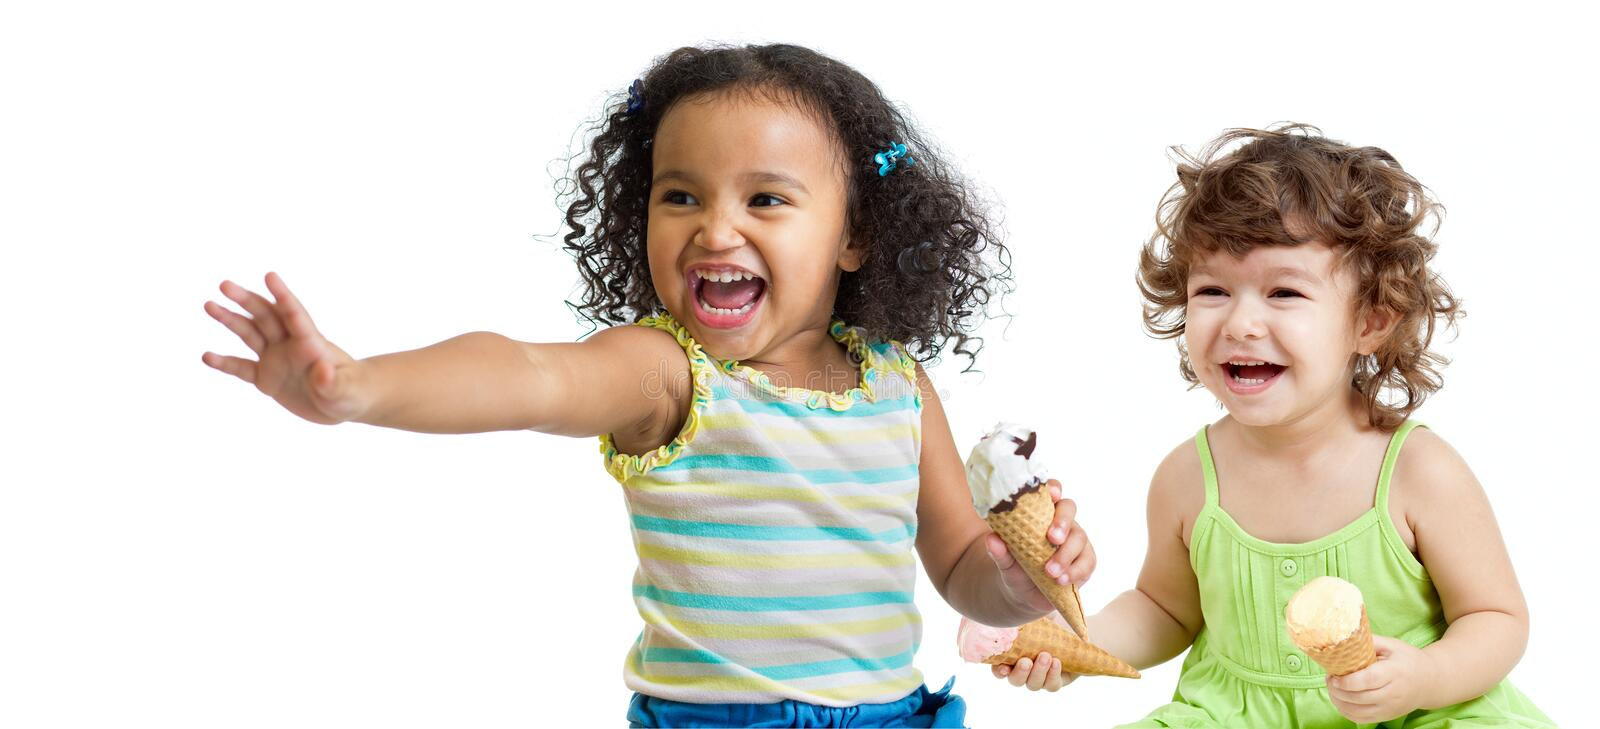 Two happy kids eating ice cream on white royalty free stock images